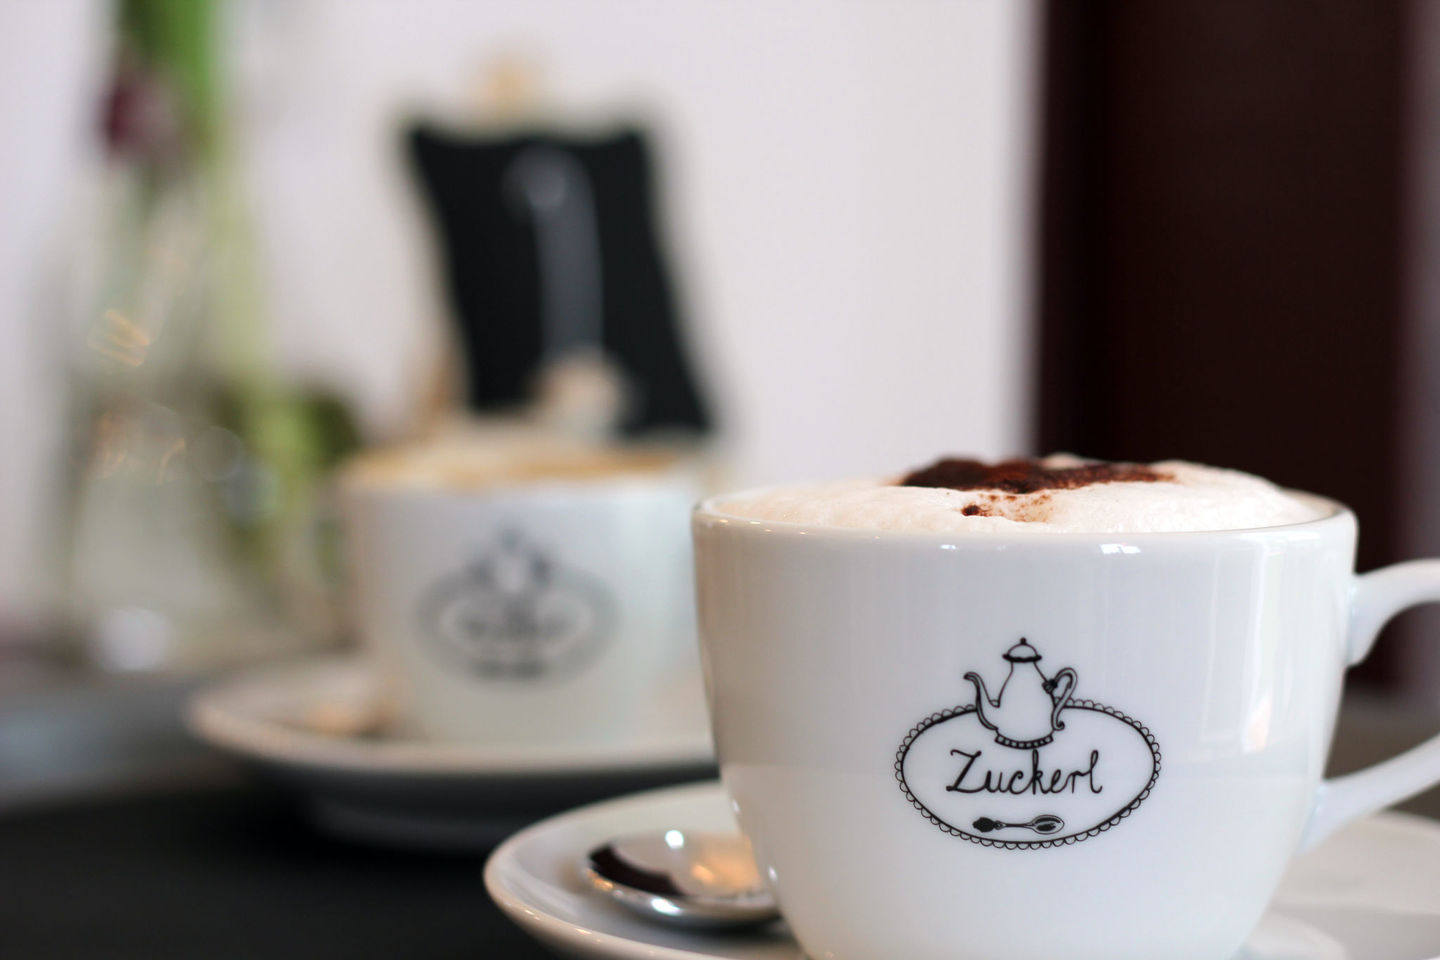 A photo of Café Zuckerl